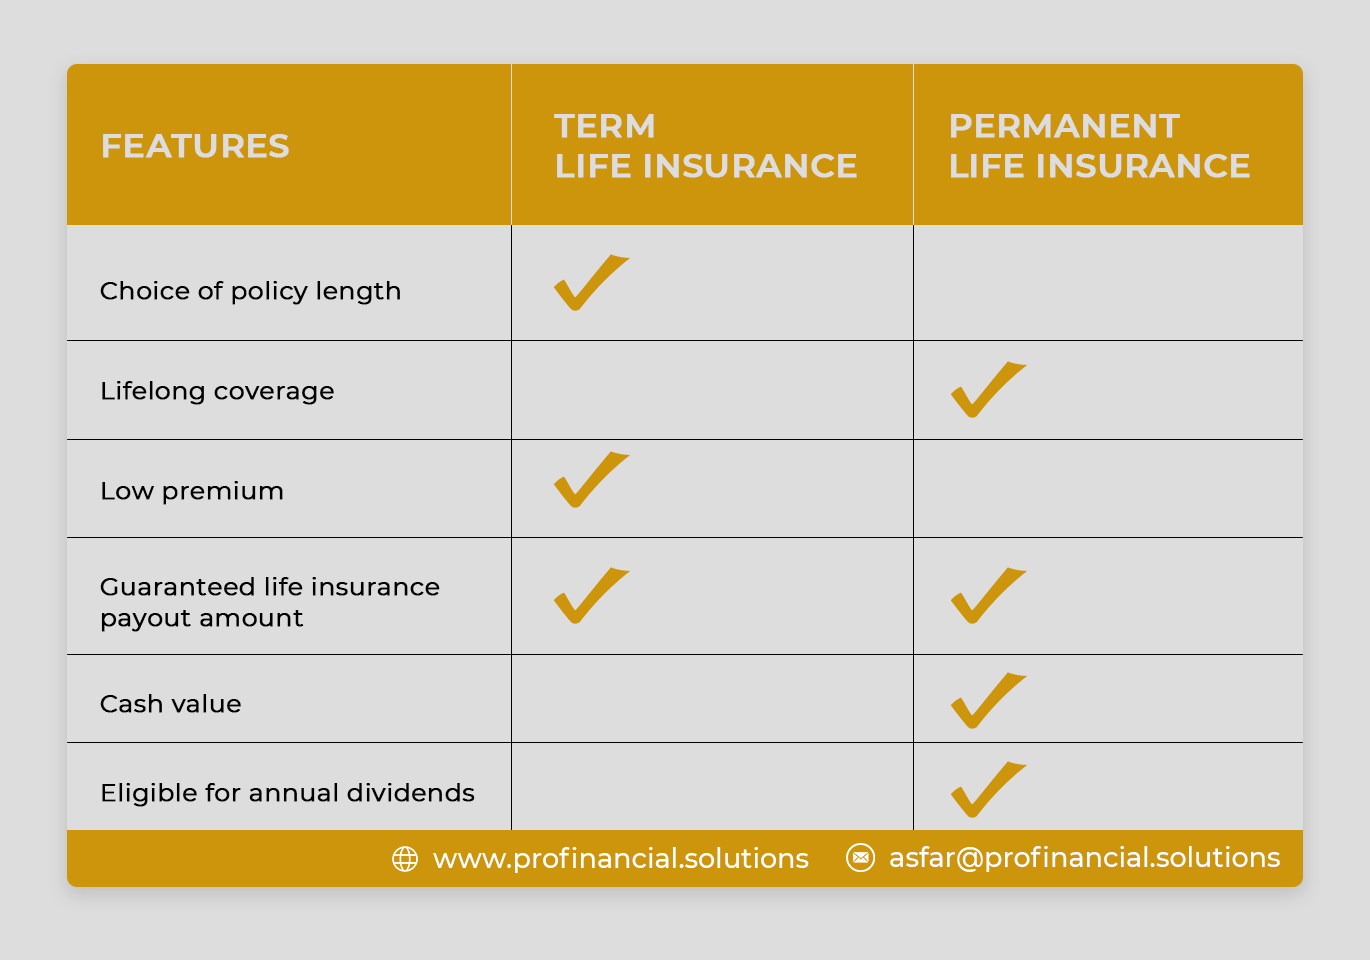 checklist can help you decide in choosing the right kind of insurance policy